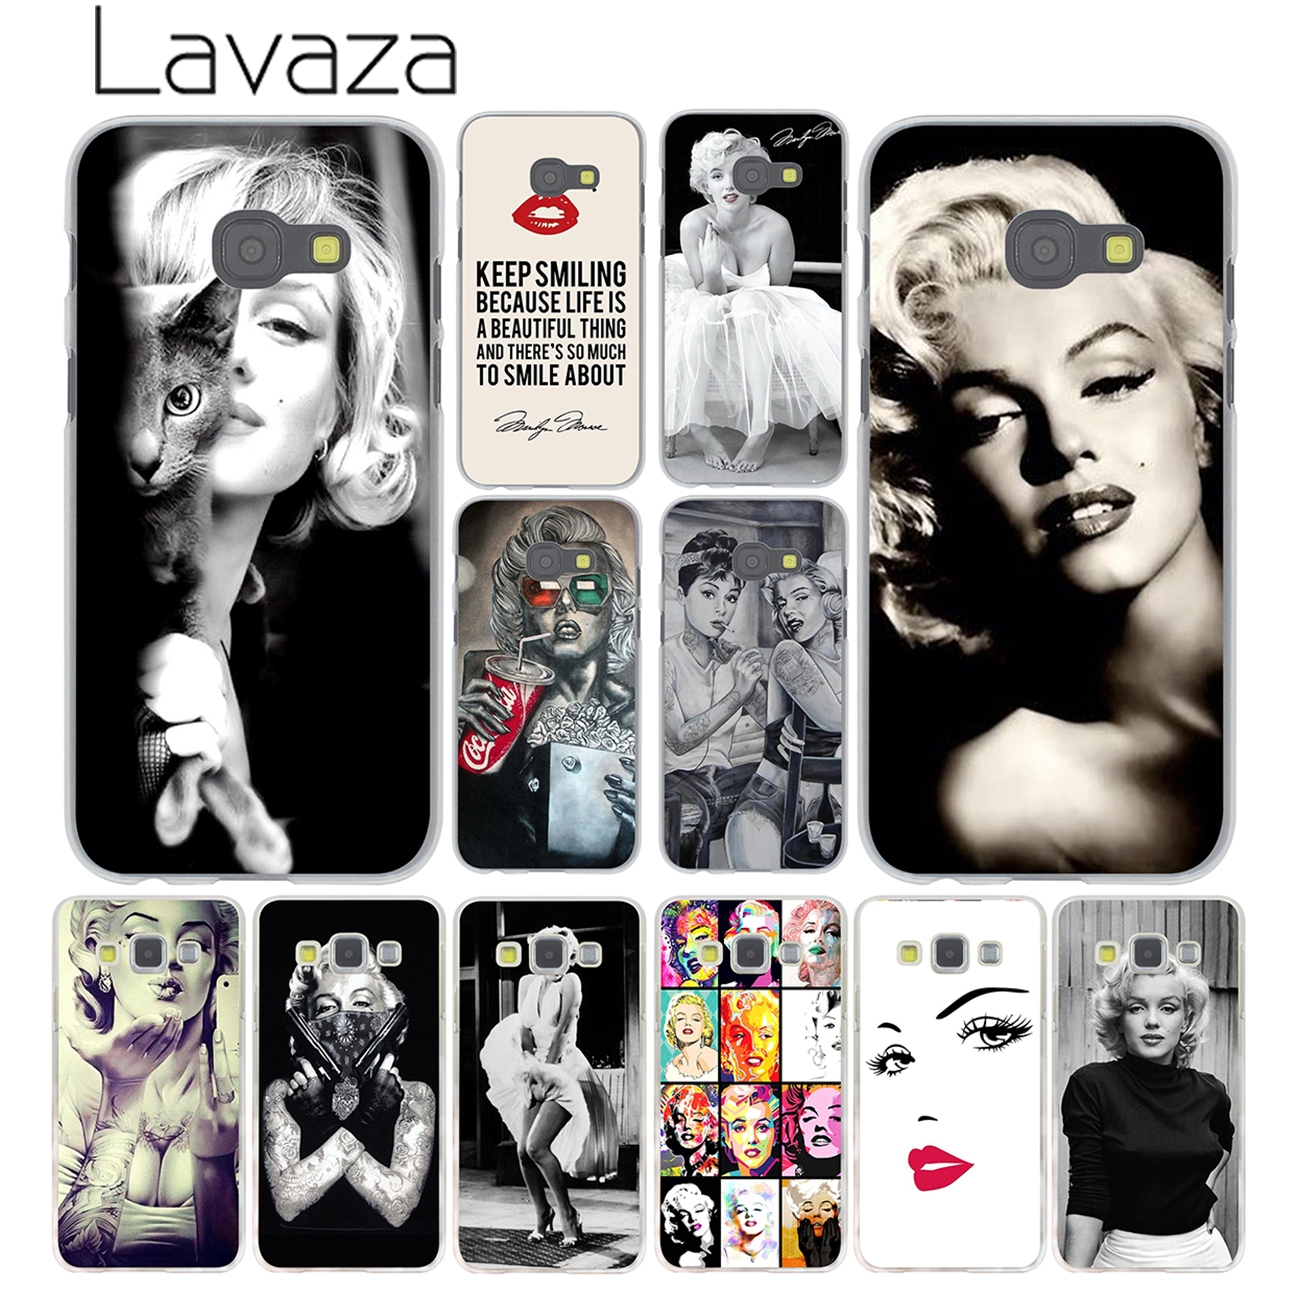 609F Marilyn Monroe and friend Lovely Hard Transparent Case Cover for Galaxy A3 A5 7 8 J5 J7 & Note 2 3 4 5 7 & Grand 2 & Prime